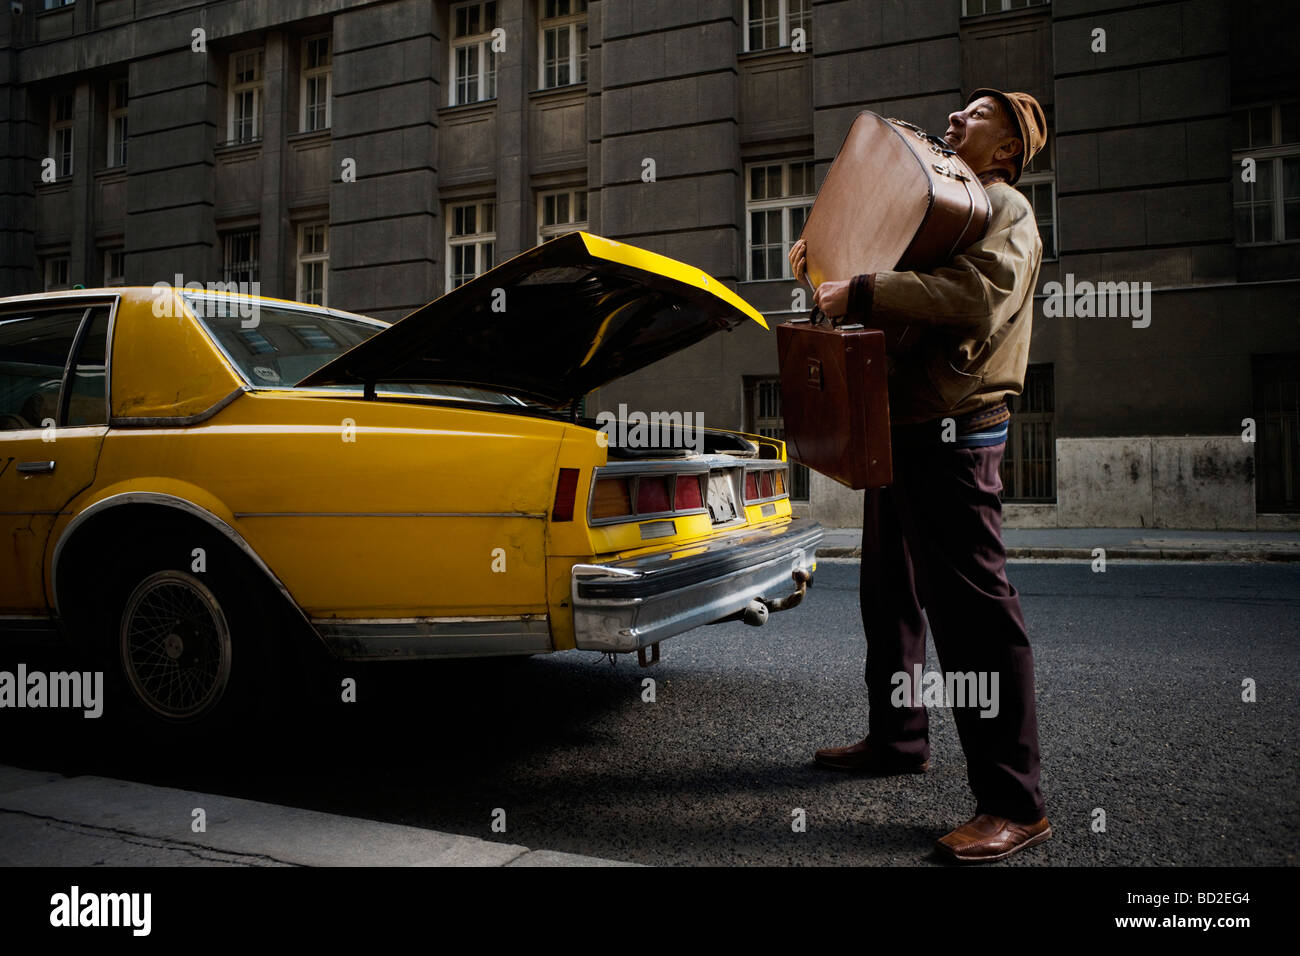 Taxi Driver Struggling With Luggage Stock Photo